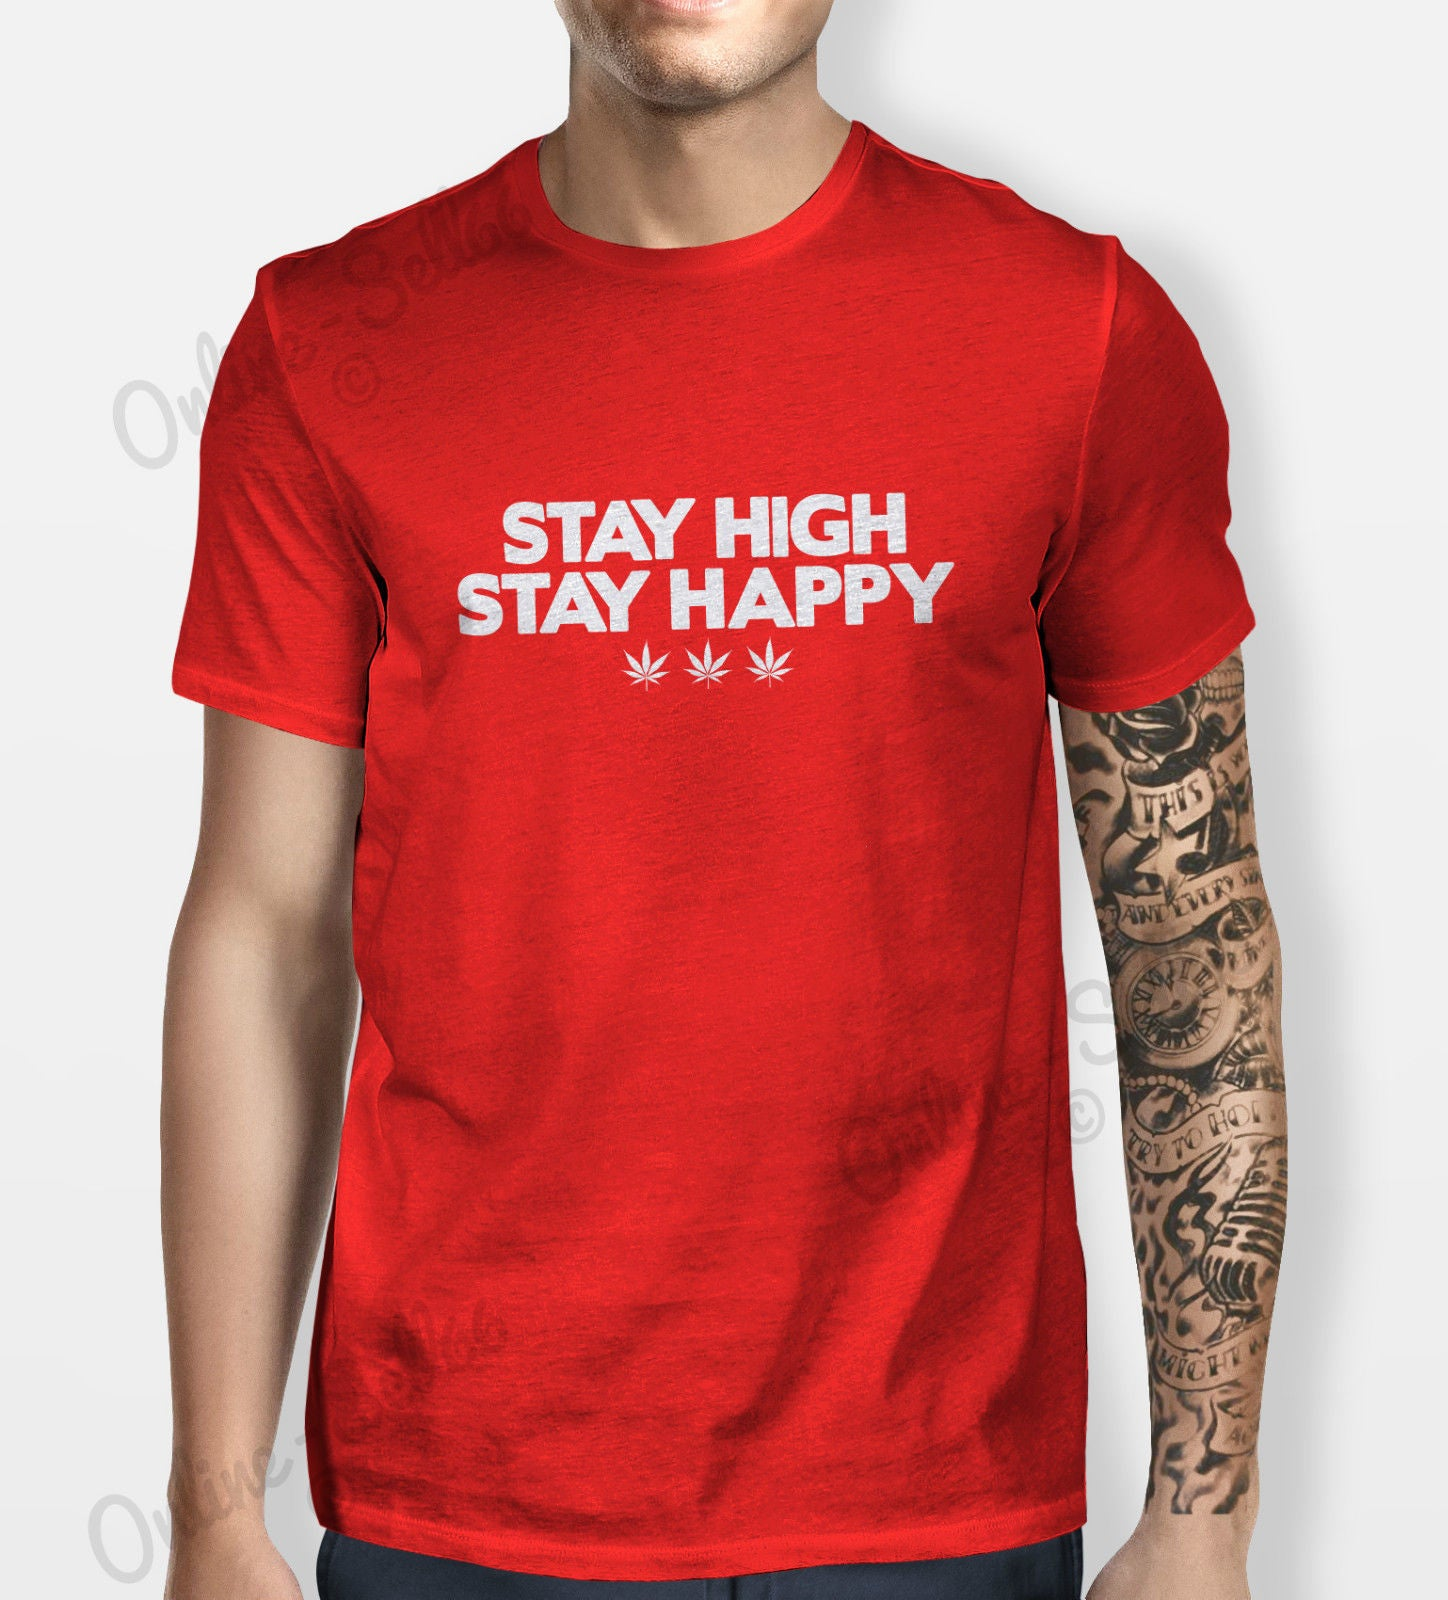 1ea935c84 Stay High Happy Tshirt Mens Womens Shirt Tee Funny Cool Weed 420 Cannabis  Drugs - The Clothing Shed